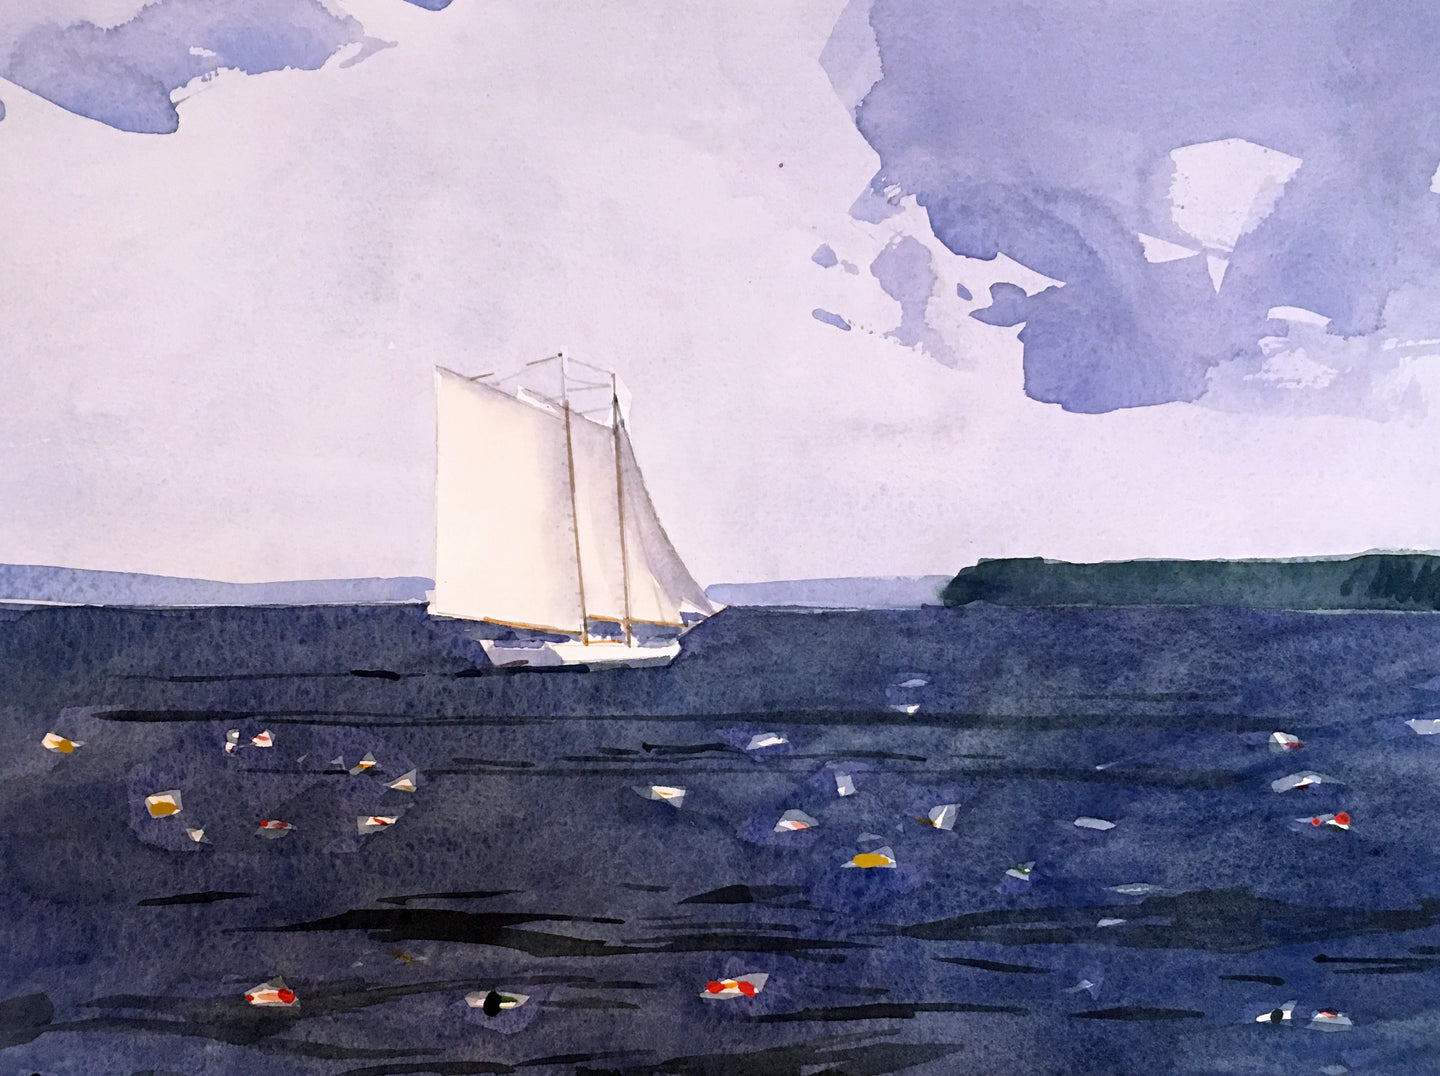 Windjammer, Penobscot Bay